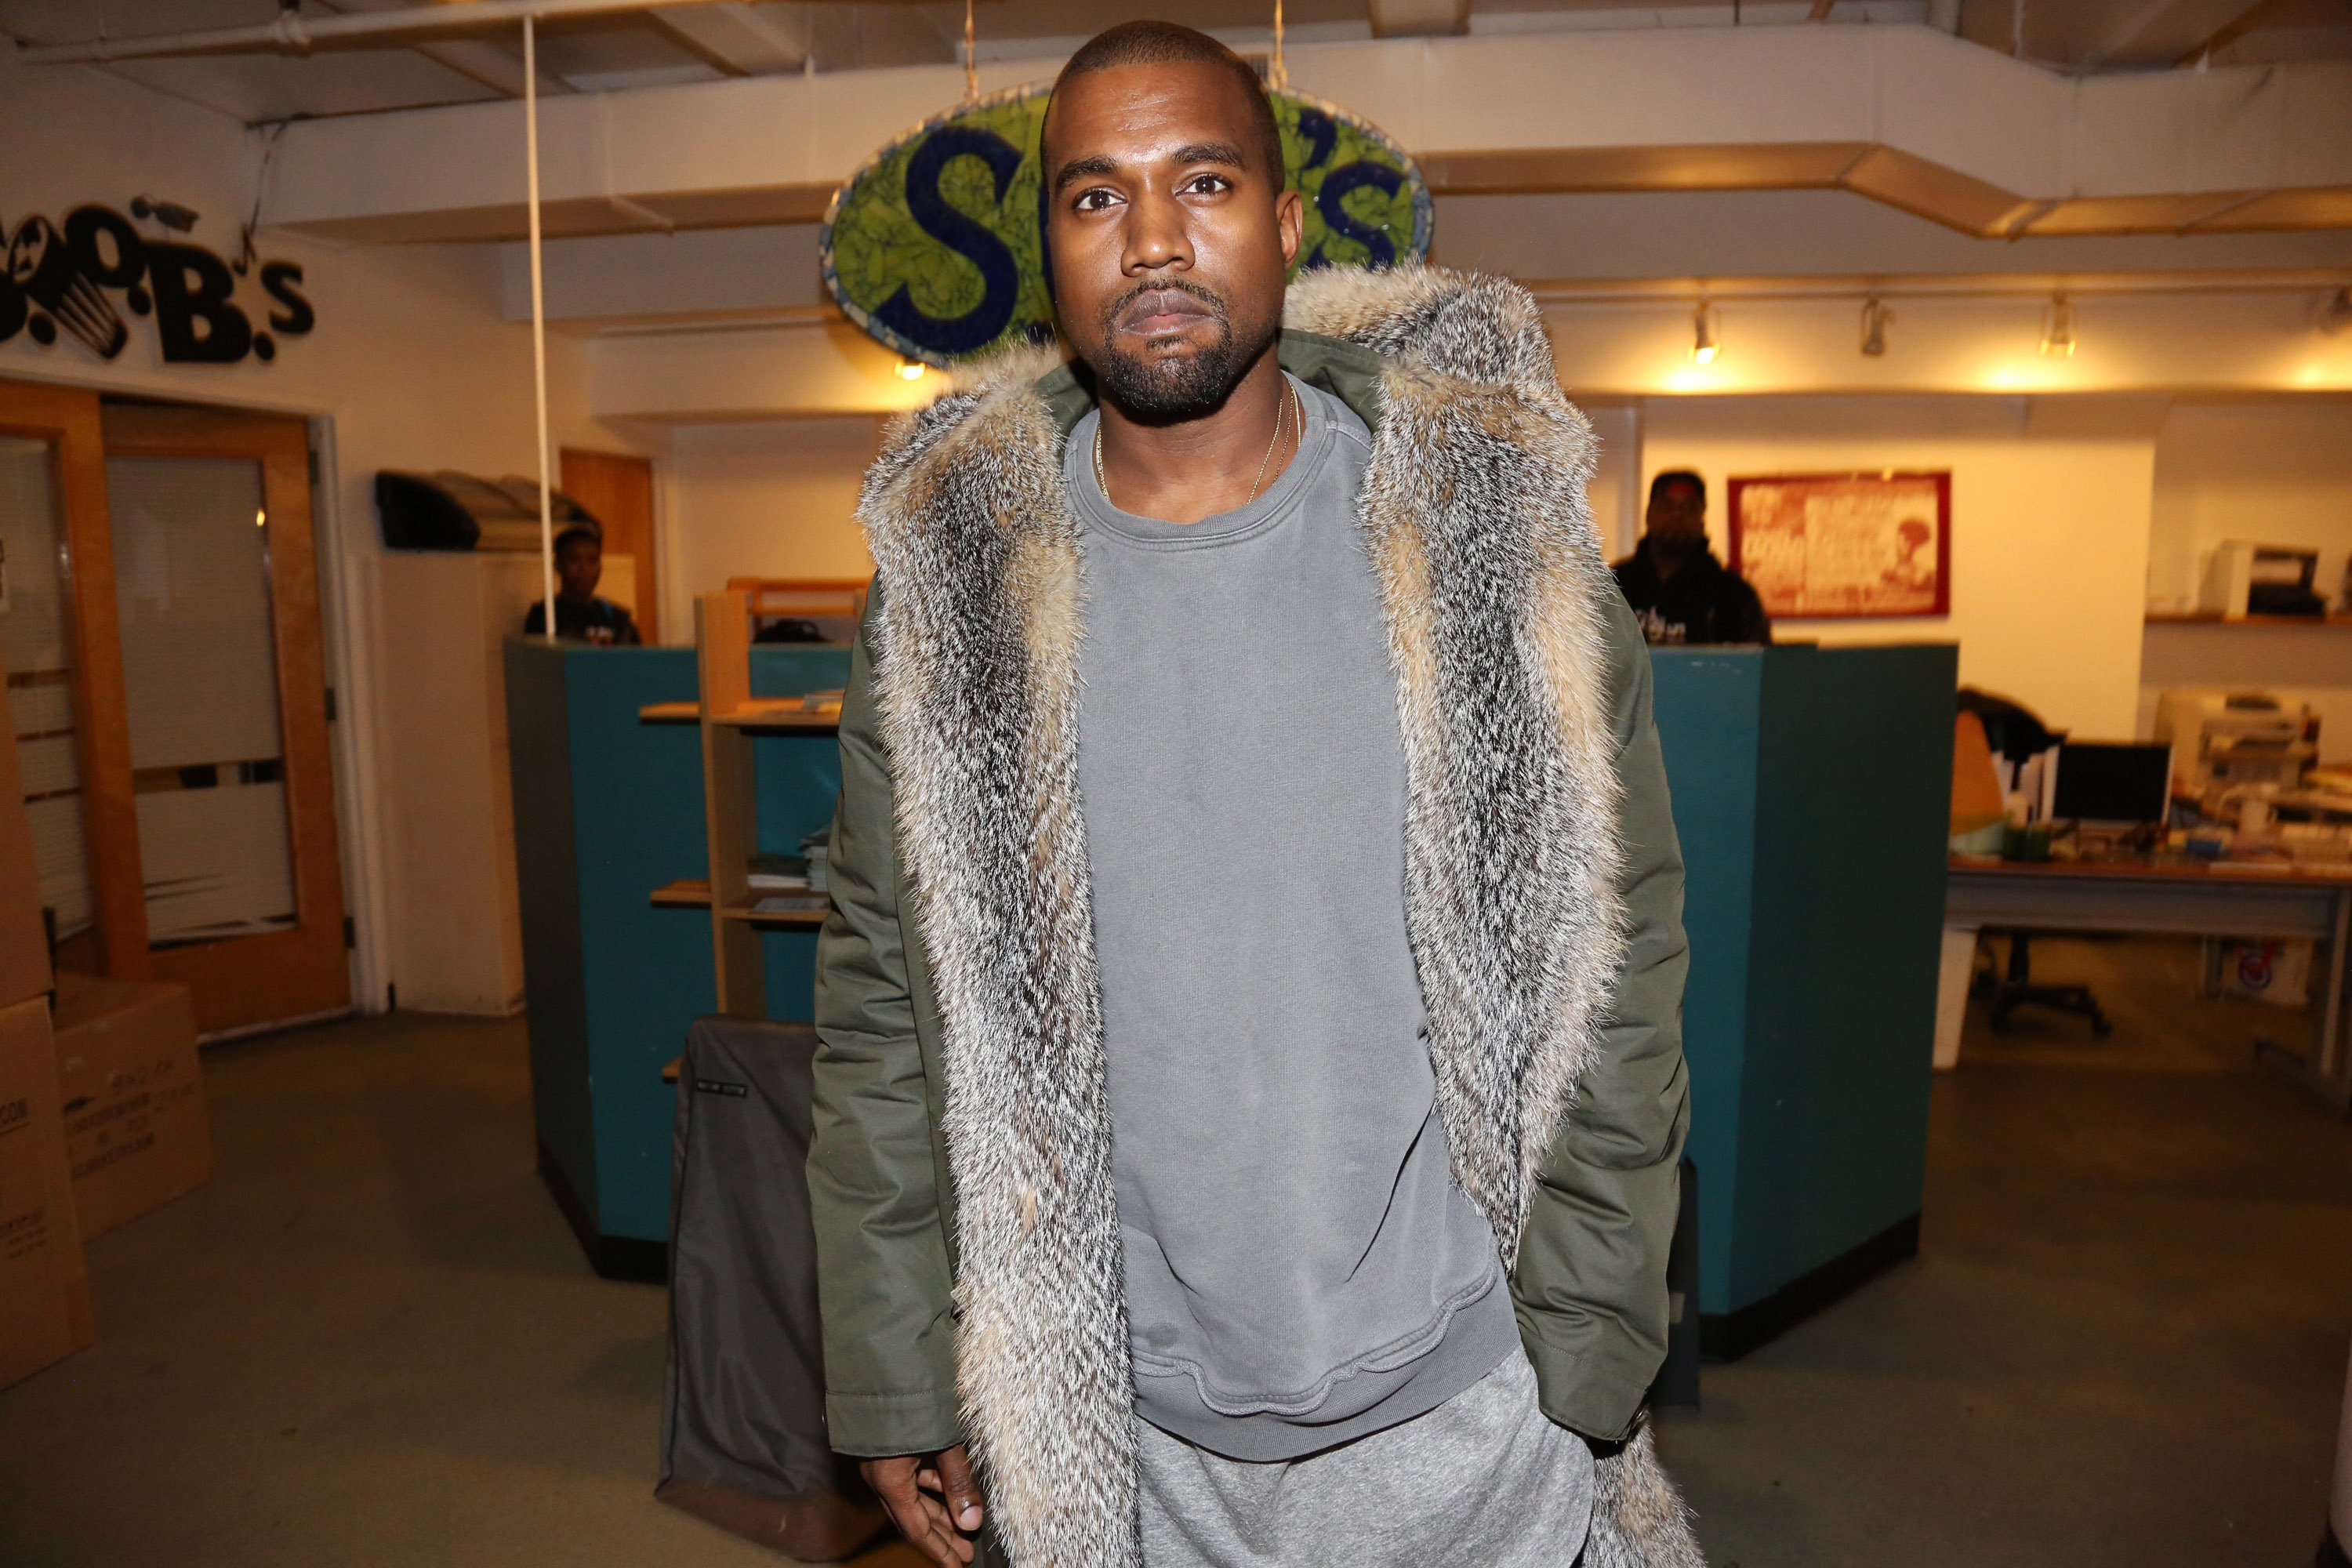 Kanye West attends SOB's on December 4, 2014, in New York City | Photo: GettyImages